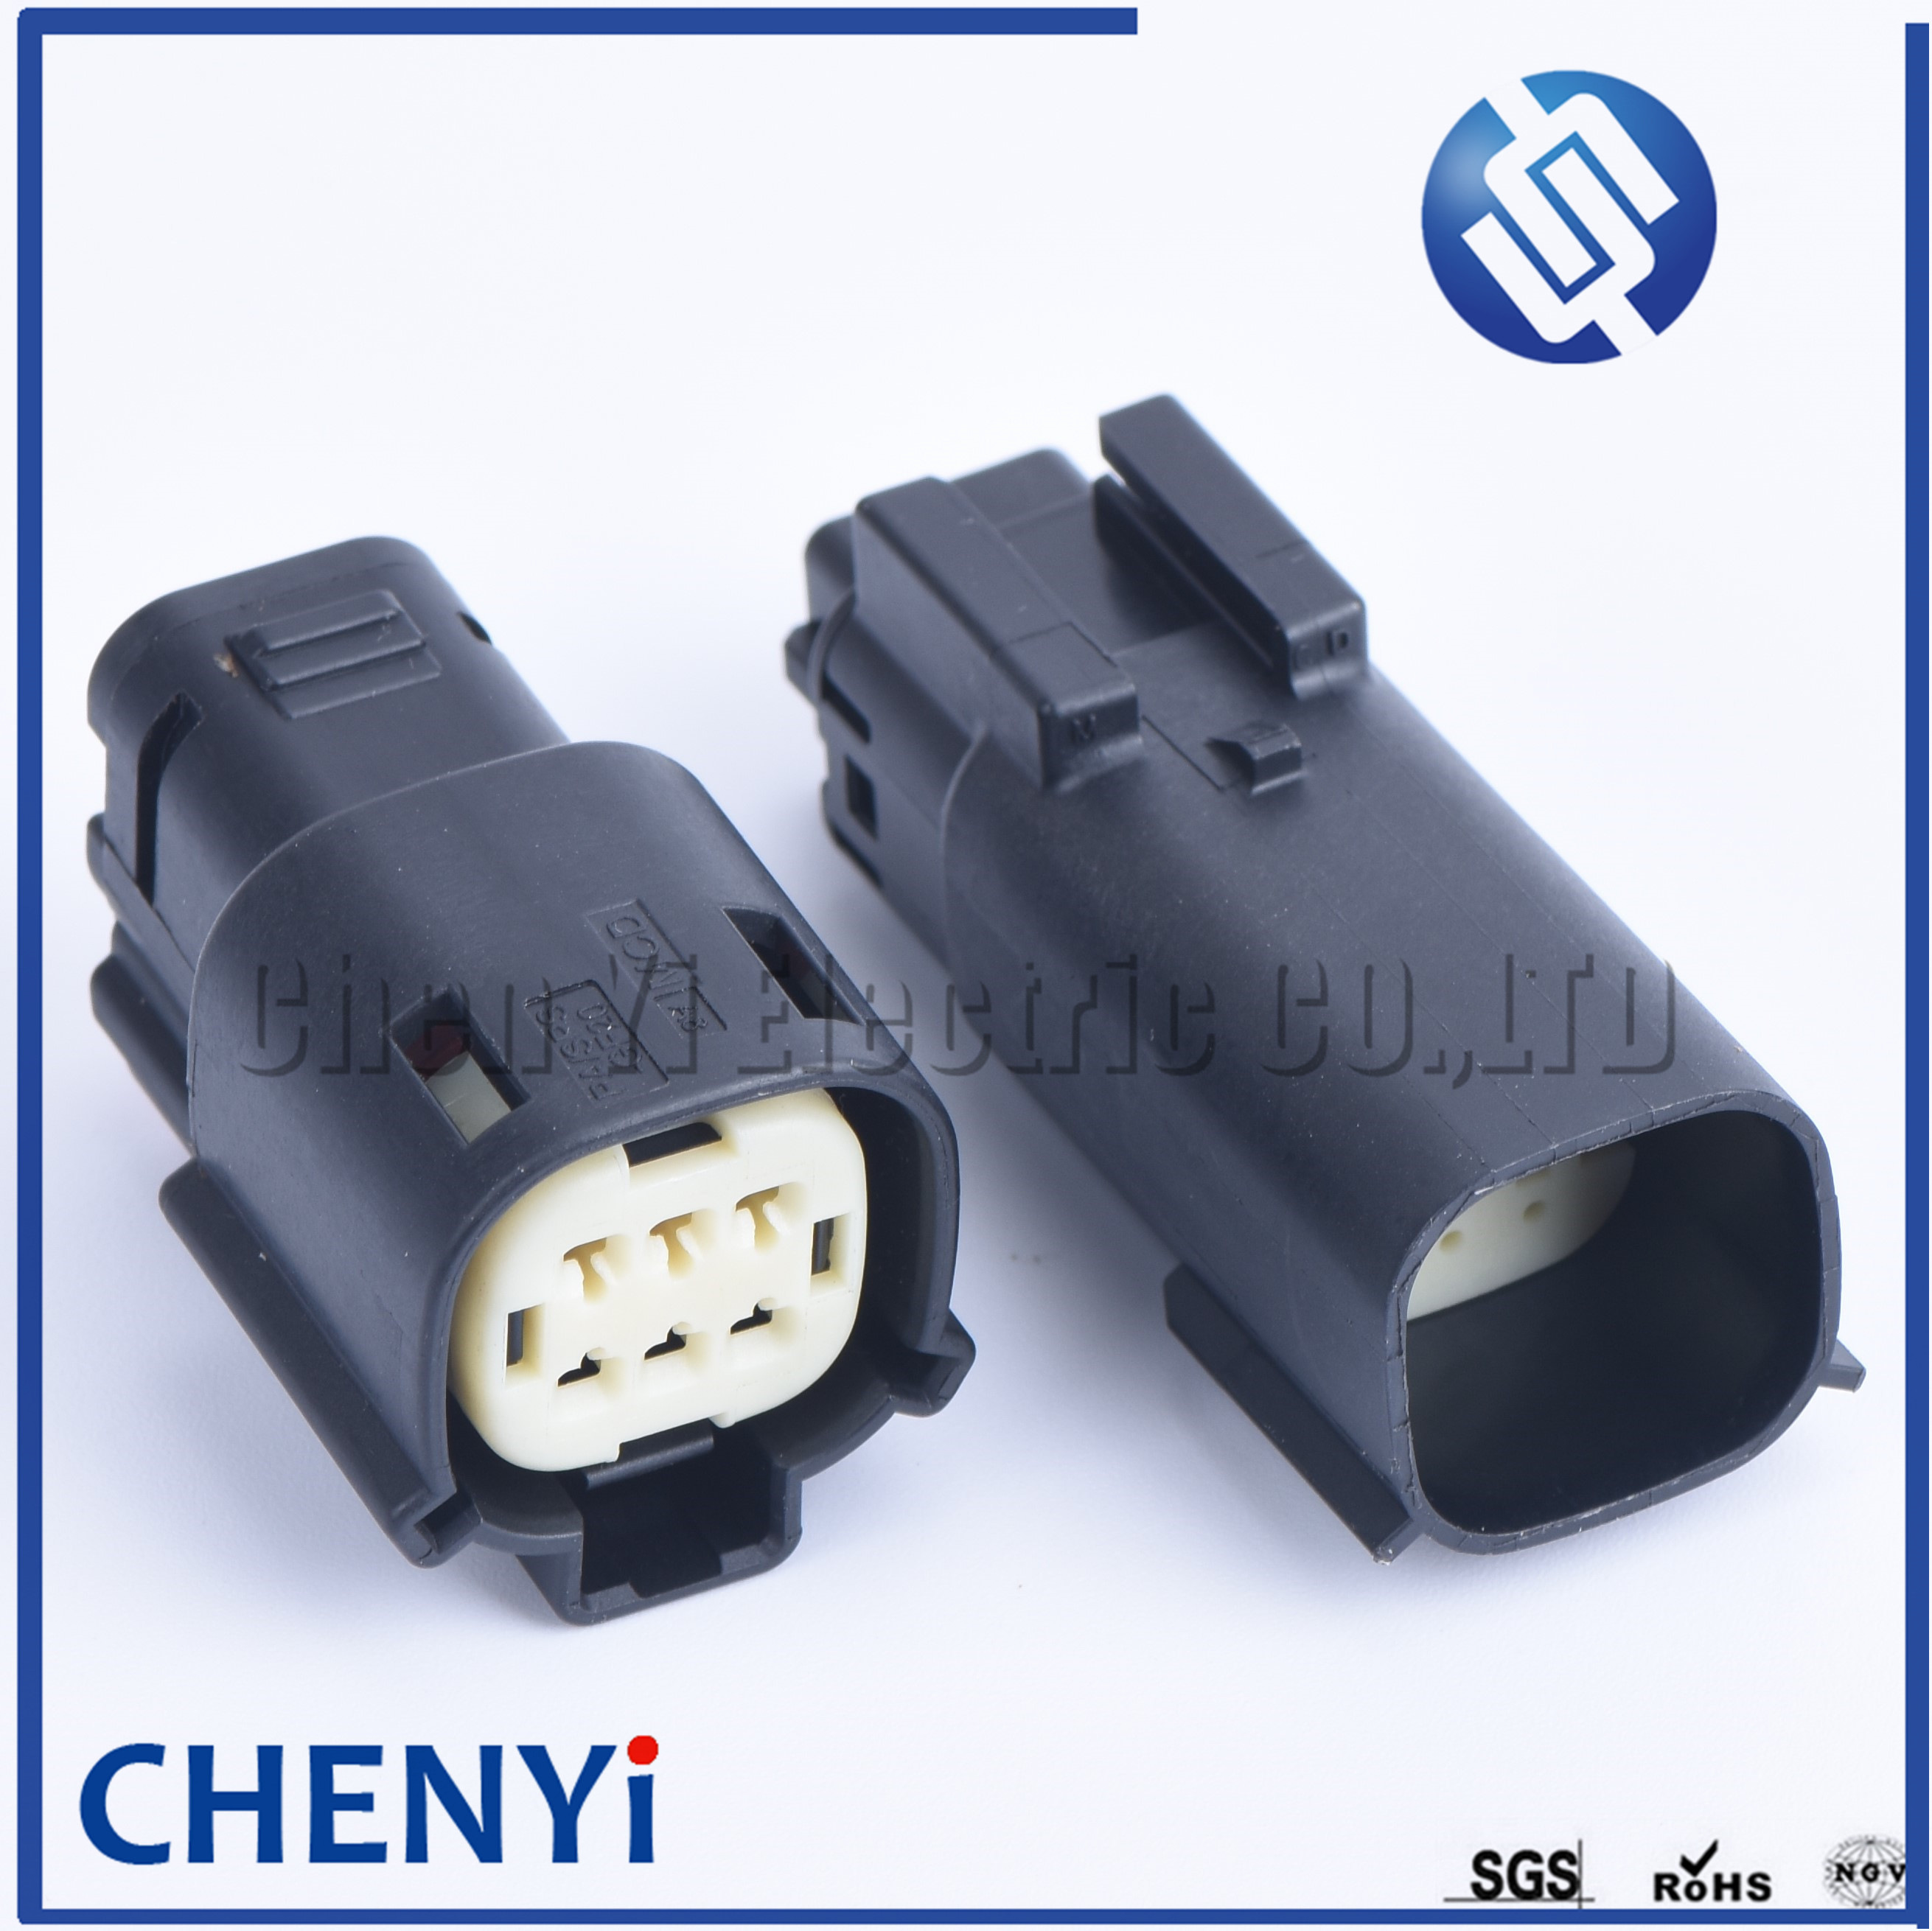 1 set  6 pin  Molex male or female Automotive Waterproof Connectors For Ford Mondeo 33472-0606 33482-0601